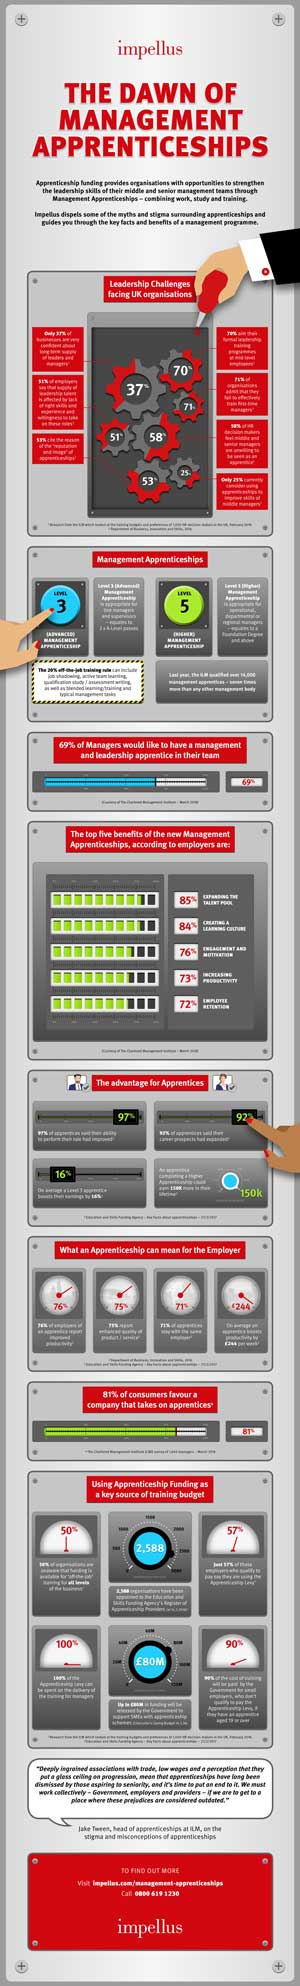 Impellus Management Apprenticeship Infographic